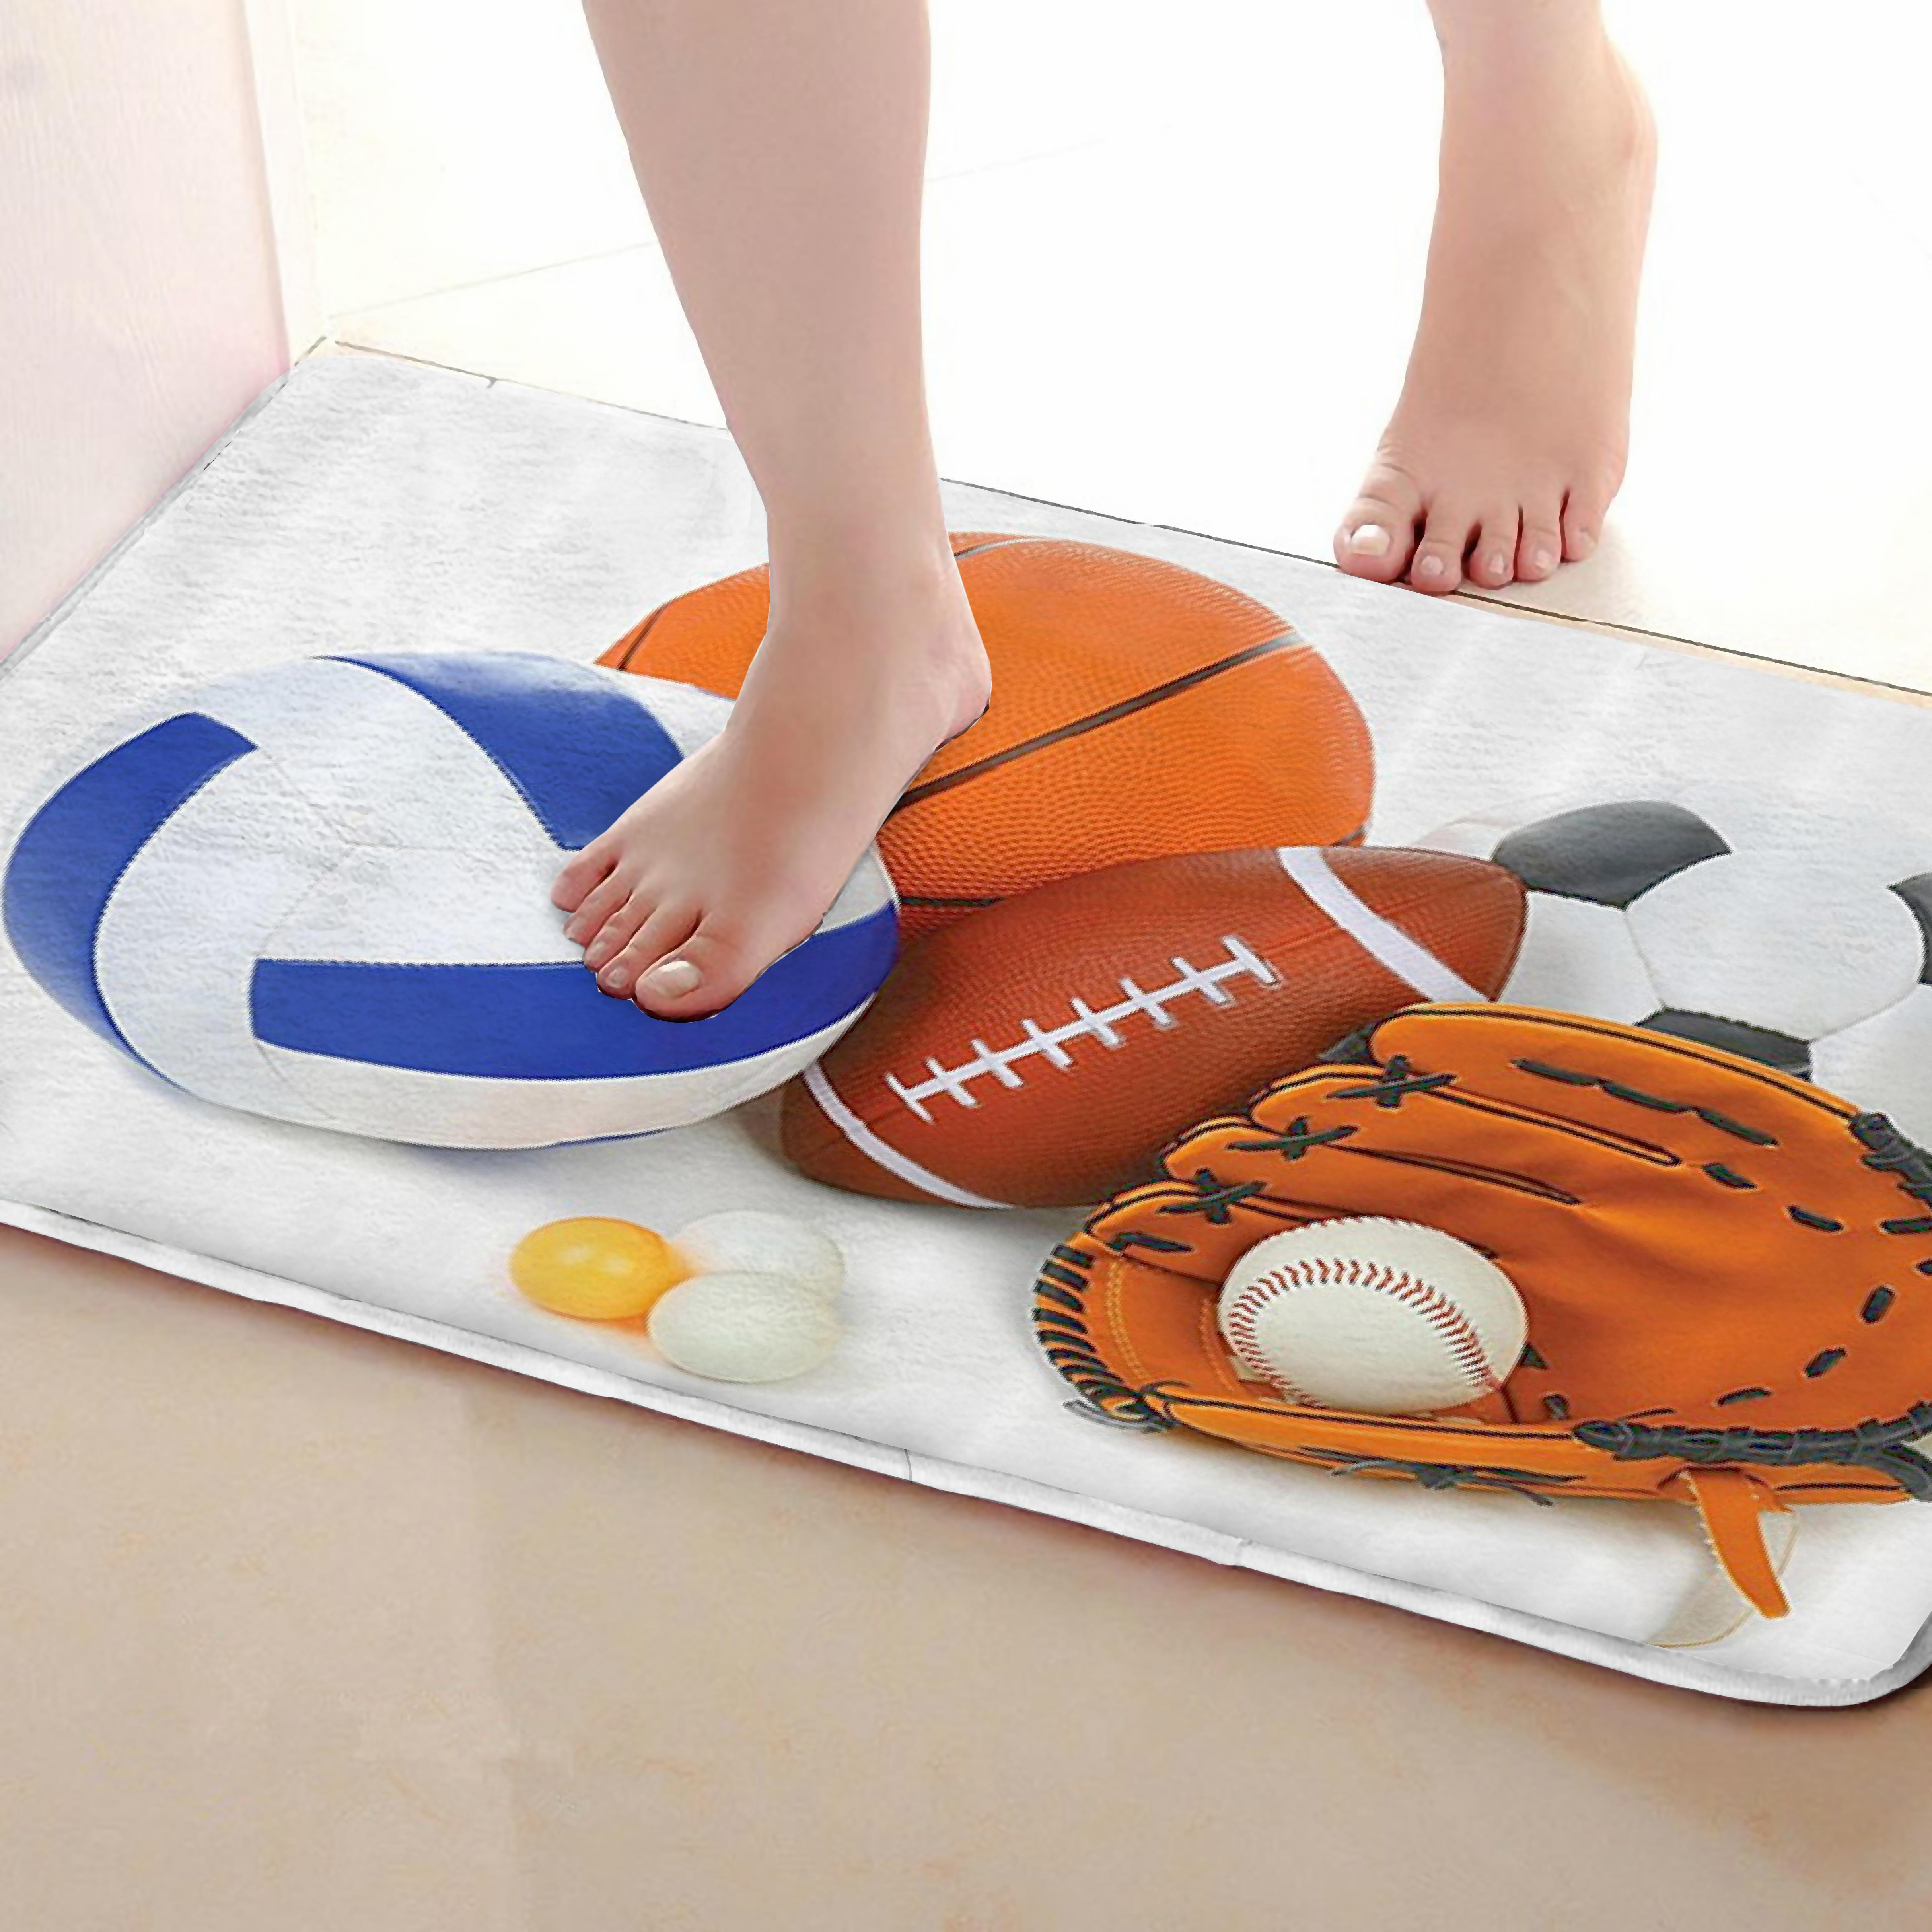 Ball Style Bathroom Mat,Funny Anti skid Bath Mat,Shower Curtains Accessories,Matching Your Shower Curtain